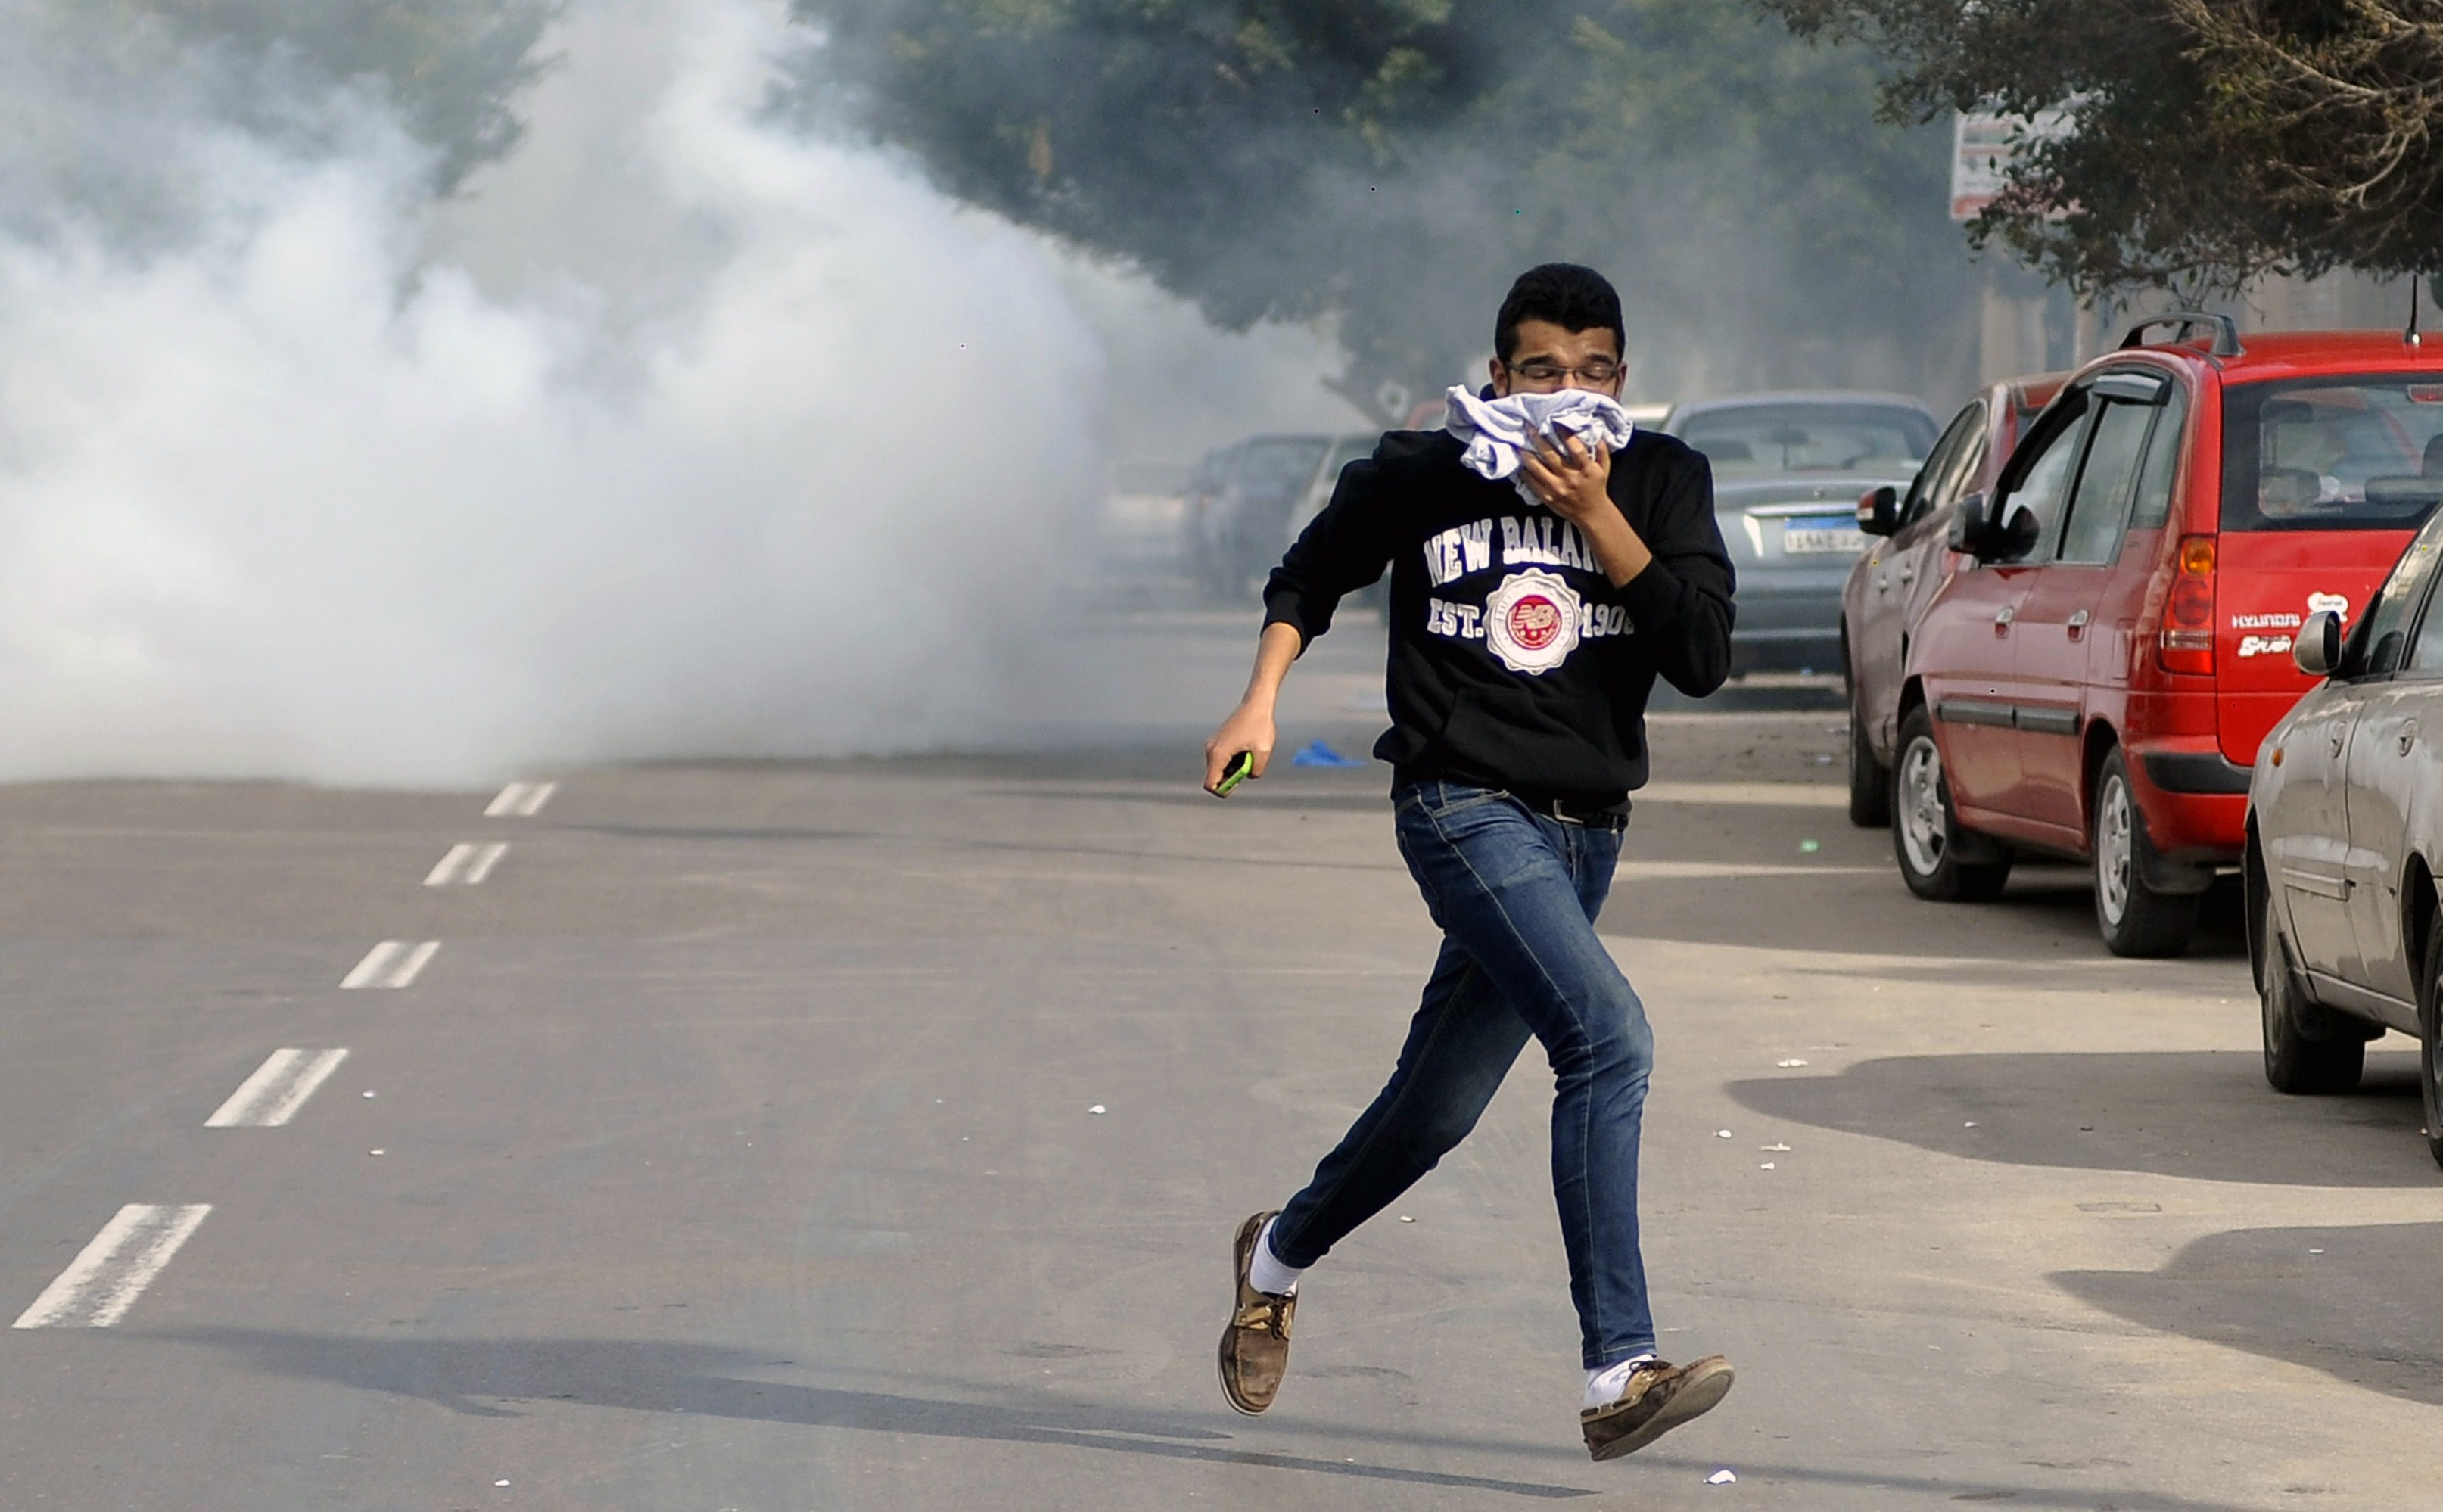 An Egyptian supporter of the Muslim Brotherhood escapes from tear gas during clashes with Egyptian police in the northern port city of Alexandria on January 23, 2014. Clashes between rival Egyptian students at a university in Alexandria killed at least one student, a supporter of ousted Islamist president Mohamed Morsi, police said.  (AFP PHOTO/STR)